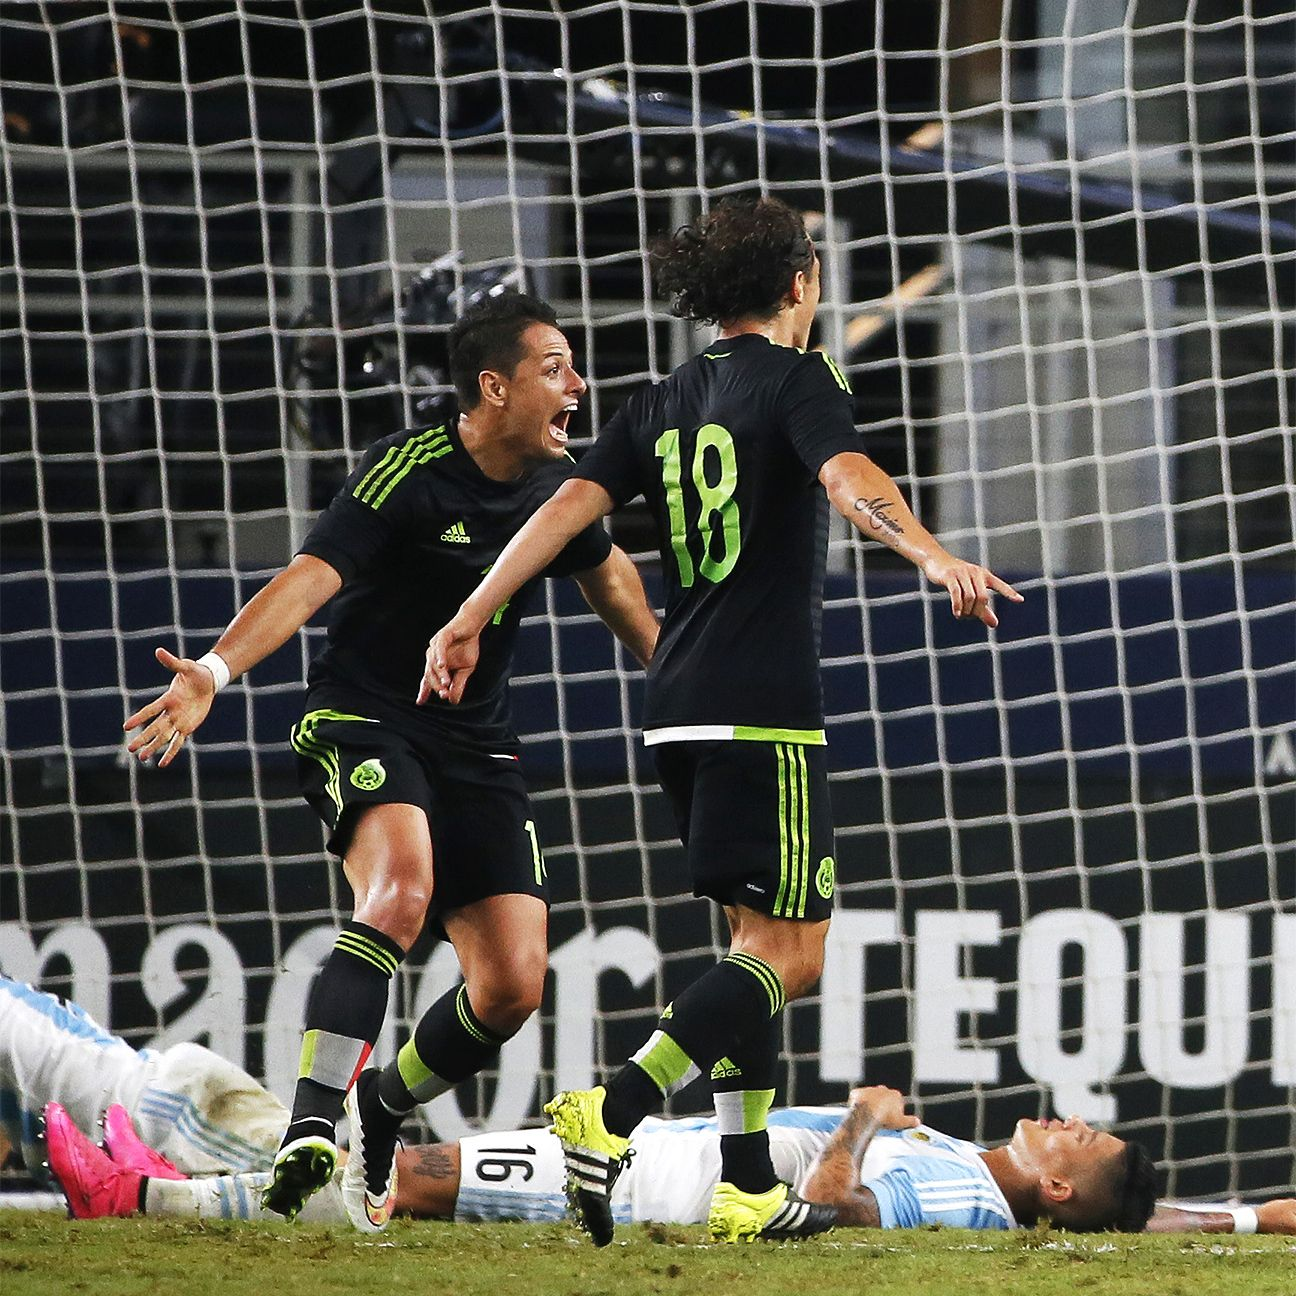 Hector Herrera's performance showed that he has rebounded from his dismal for Mexico during the Gold Cup.